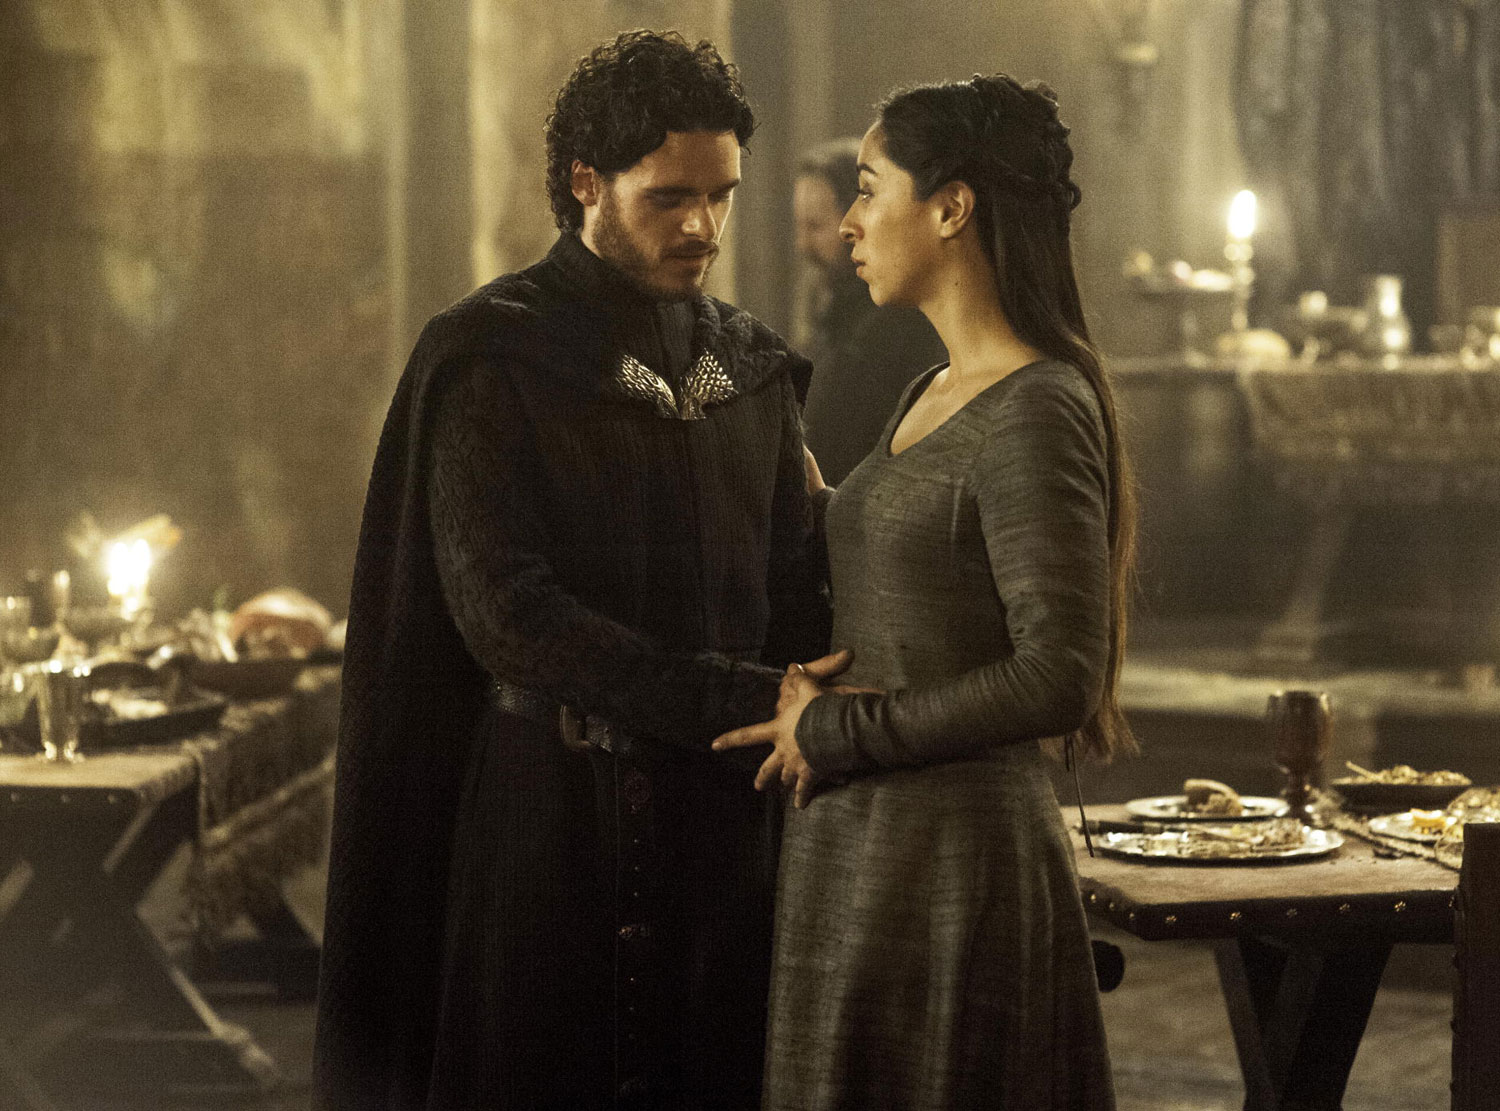 Wife of King Robb Stark, Talisa was murdered in front of her husband's eyes at The Red Wedding. Talisa met Robb Stark when she was acting as a nurse for his army. The two fell in love and she was pregnant when she was stabbed to death. We all wanted to see little Robb Stark […]